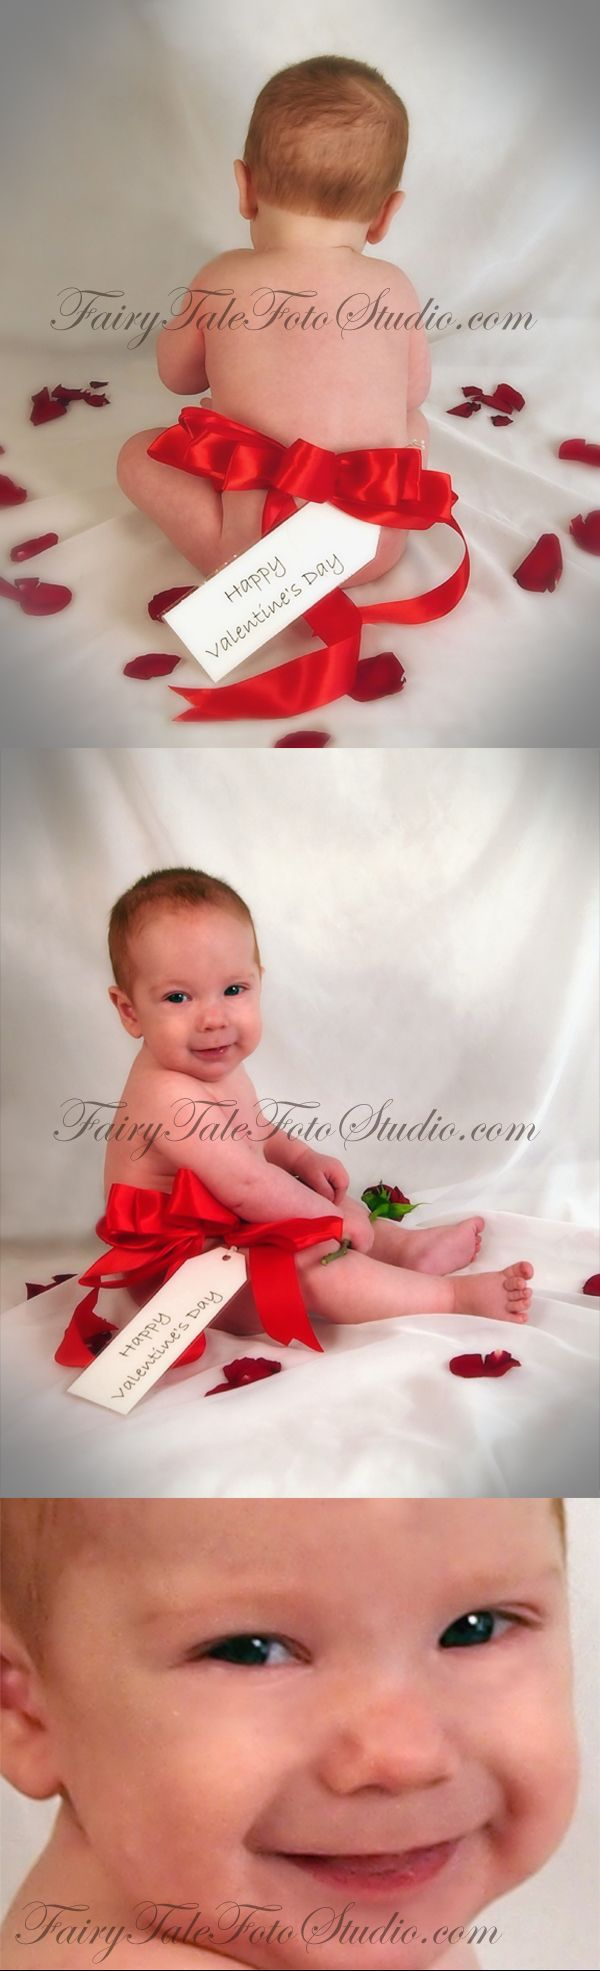 Just Kids Photography Happy Valentine S Day Baby Bow 3 Month Old